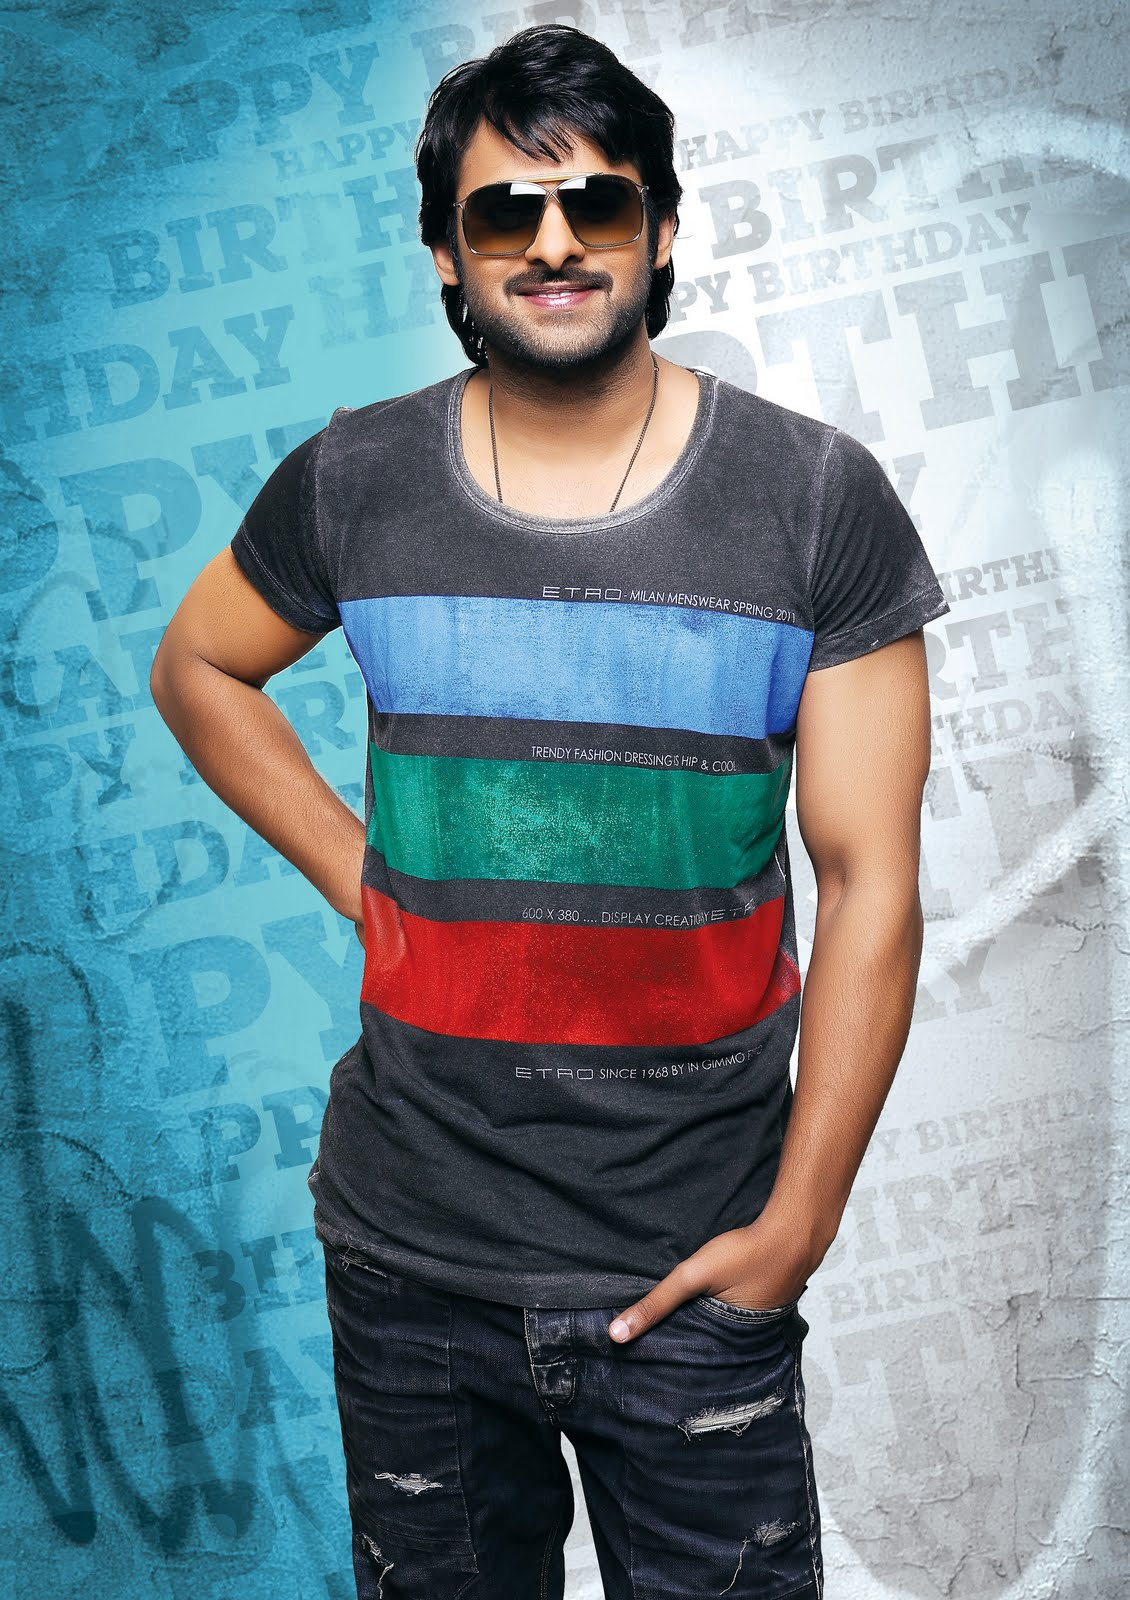 prabhas: prabhas awesome hd stills without watermarks